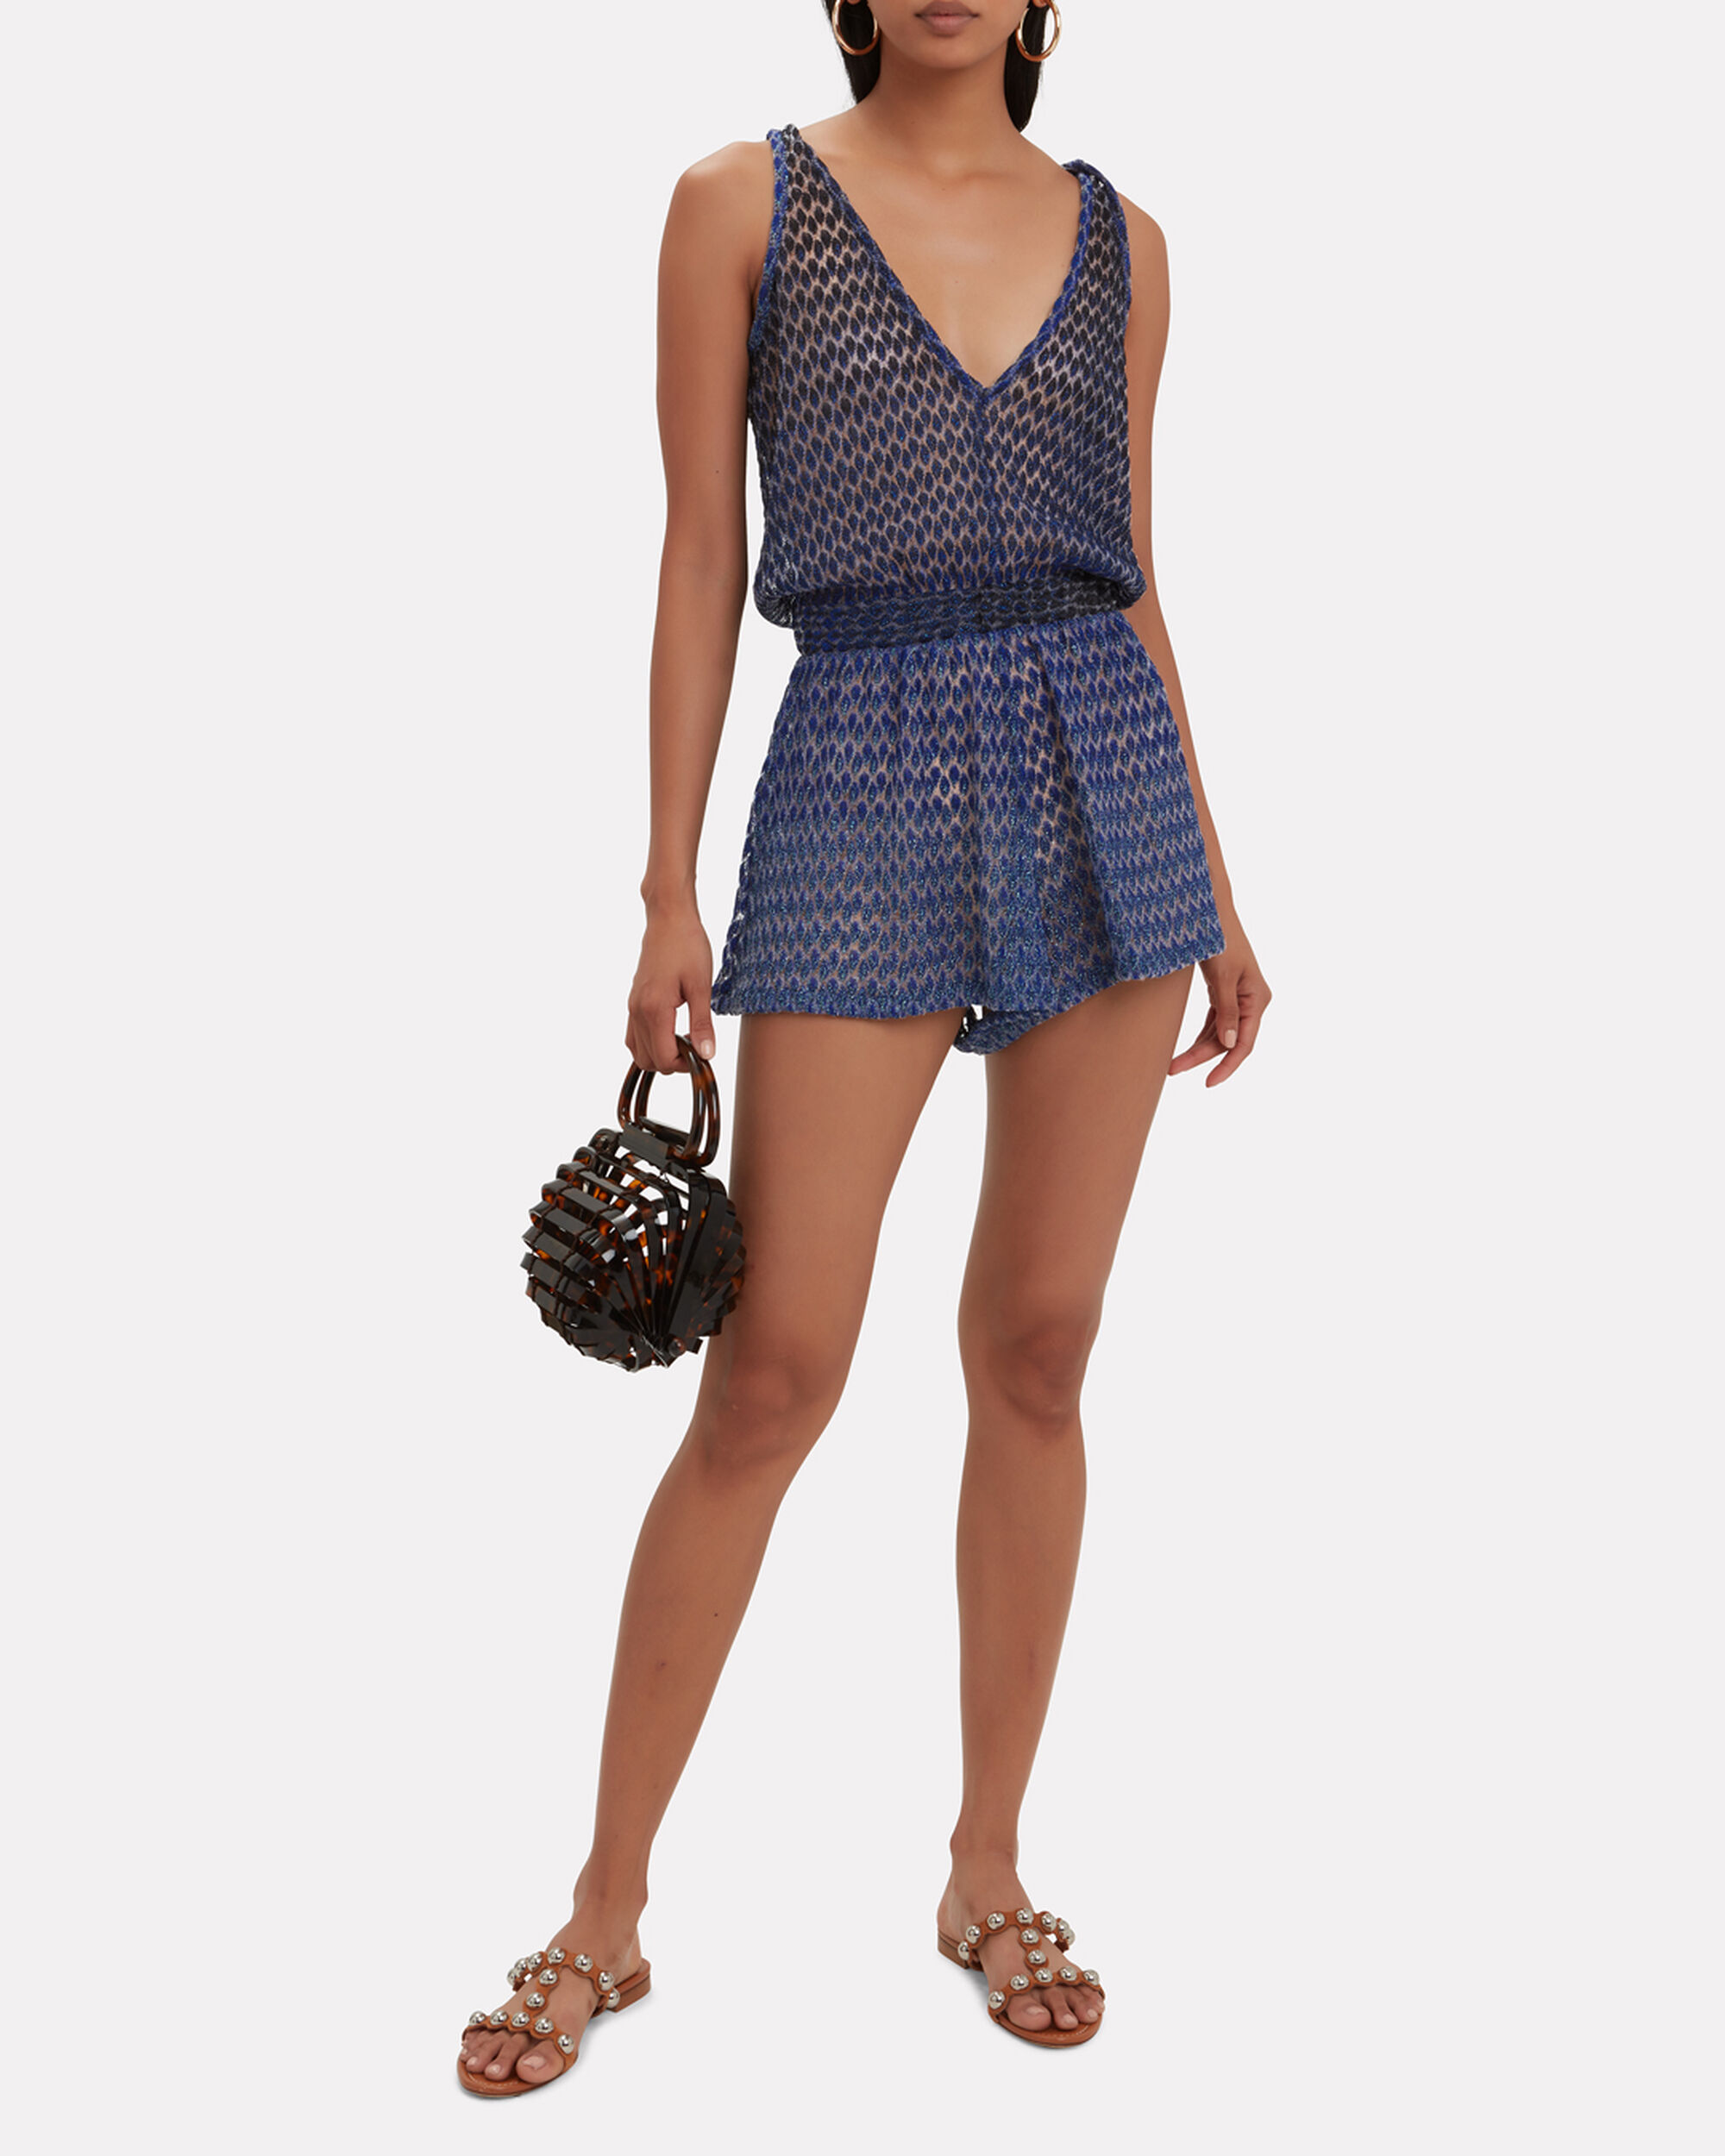 Crochet Metallic Romper, BLUE-DRK, hi-res